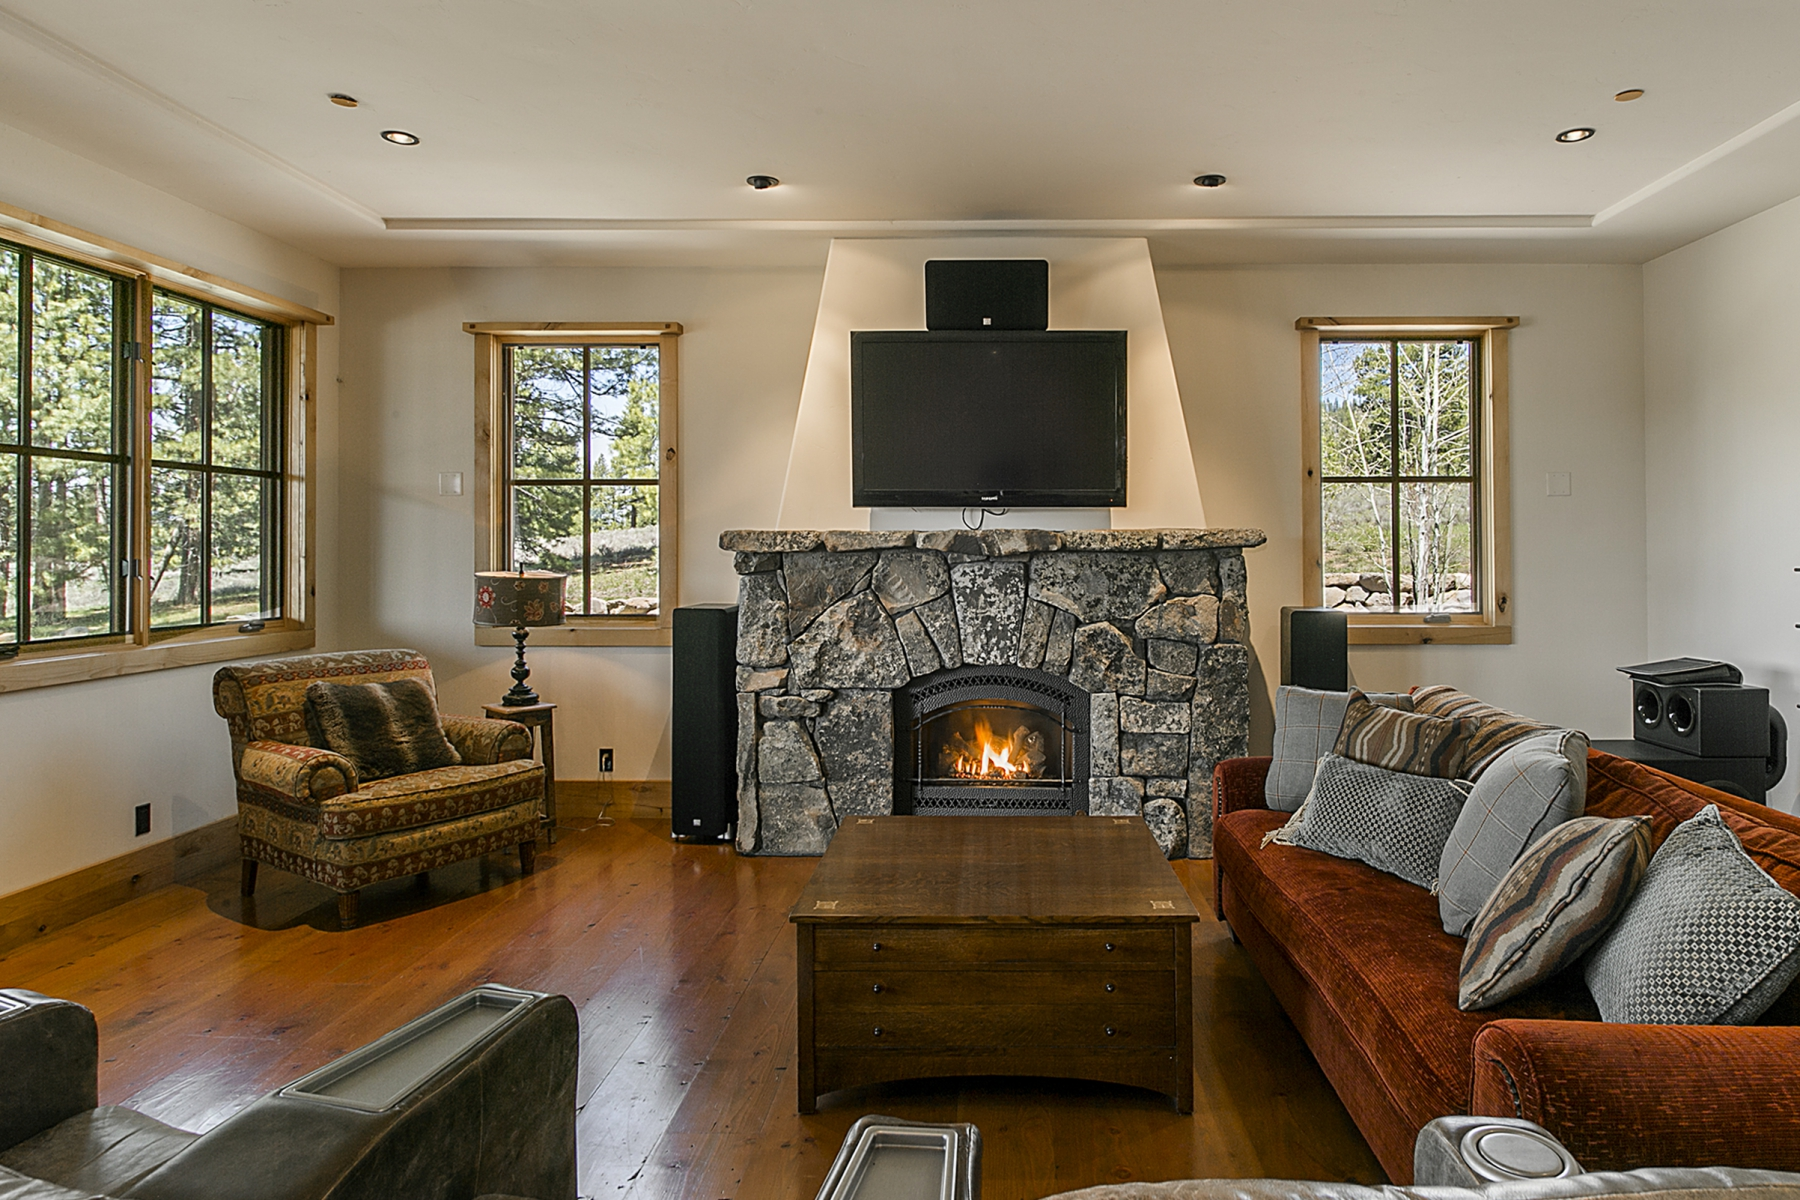 Additional photo for property listing at 12568 Union Mills Road  Truckee, California 96161 United States